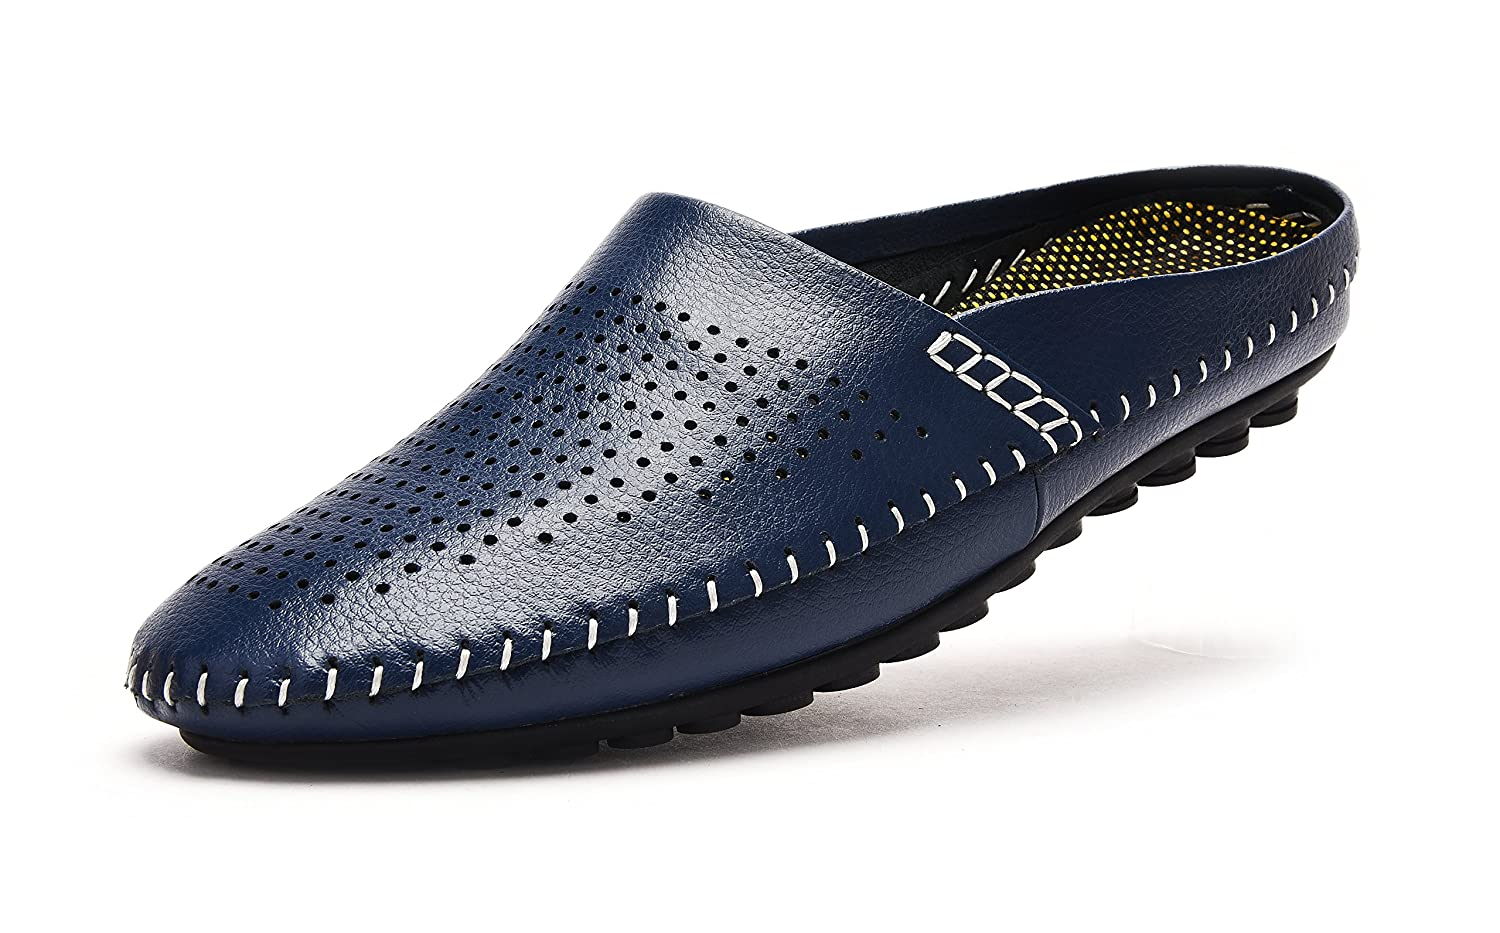 V.J Men's Classic Handsewn Genuine Leather House Slippers Office Slippers Casual Breathable Sandals B078X7HVX4 9.5 D(M) US|Blue